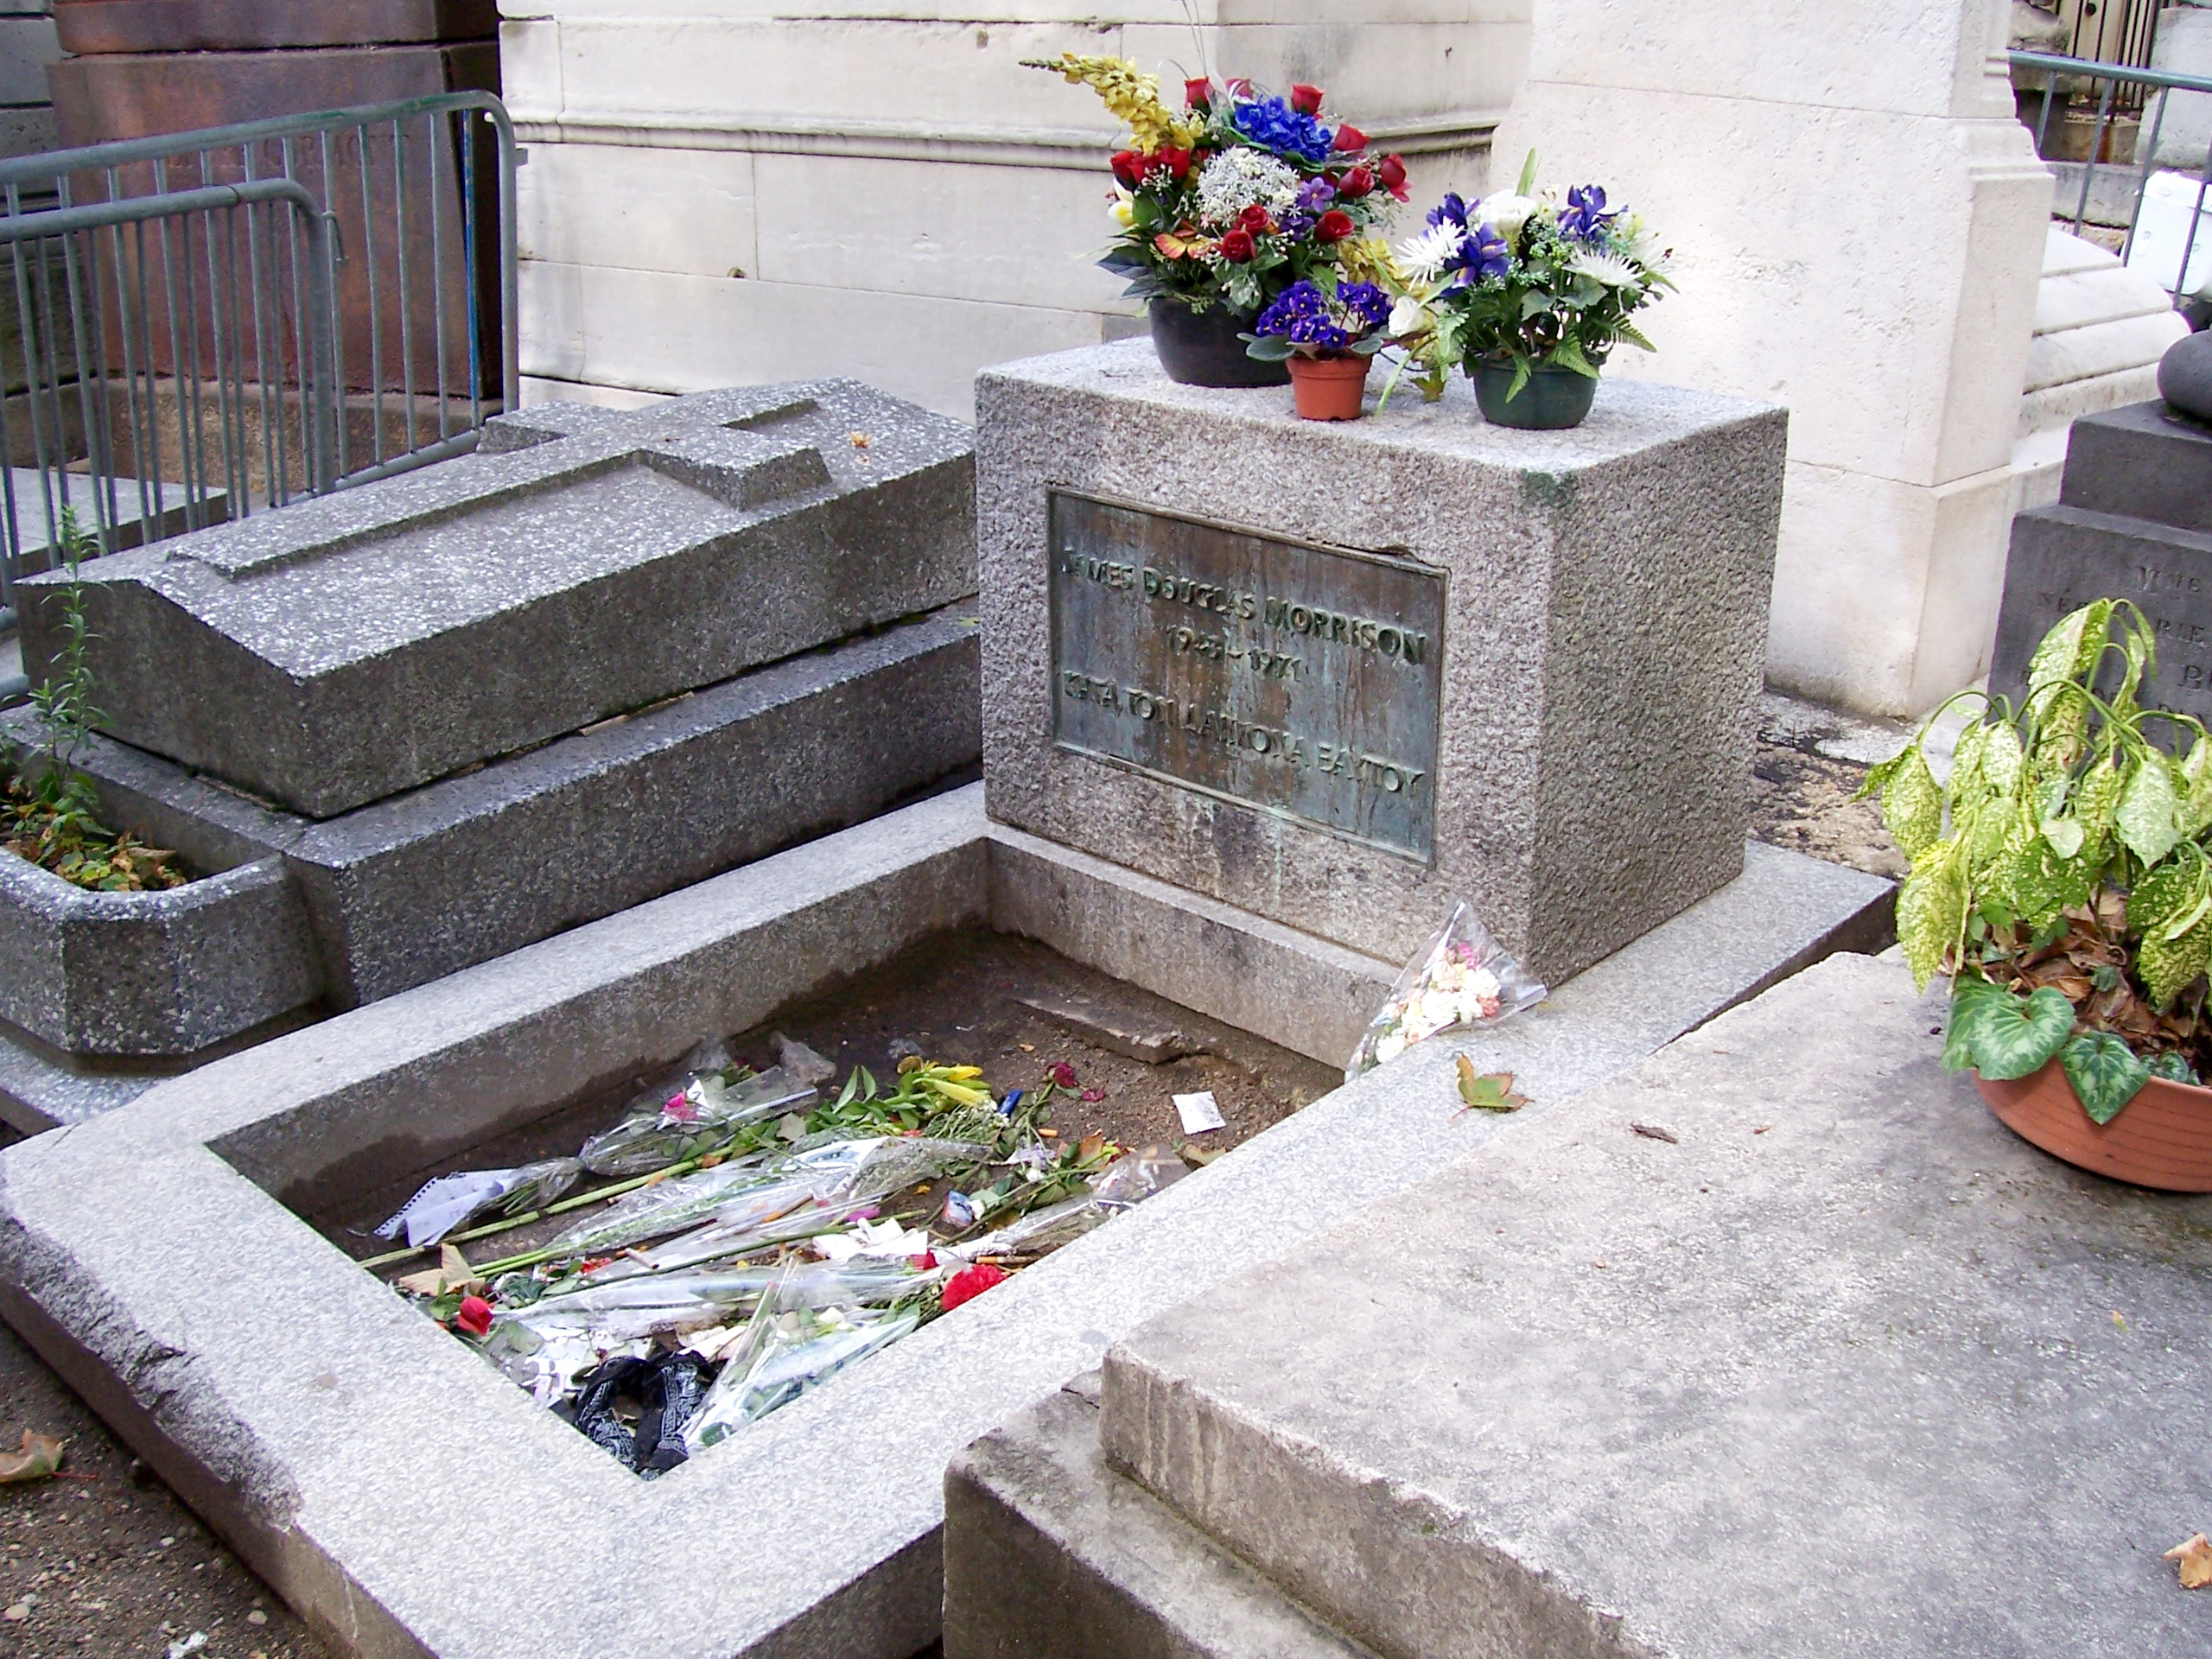 Description Jim-Morrison Pere Lachaise 2.jpg